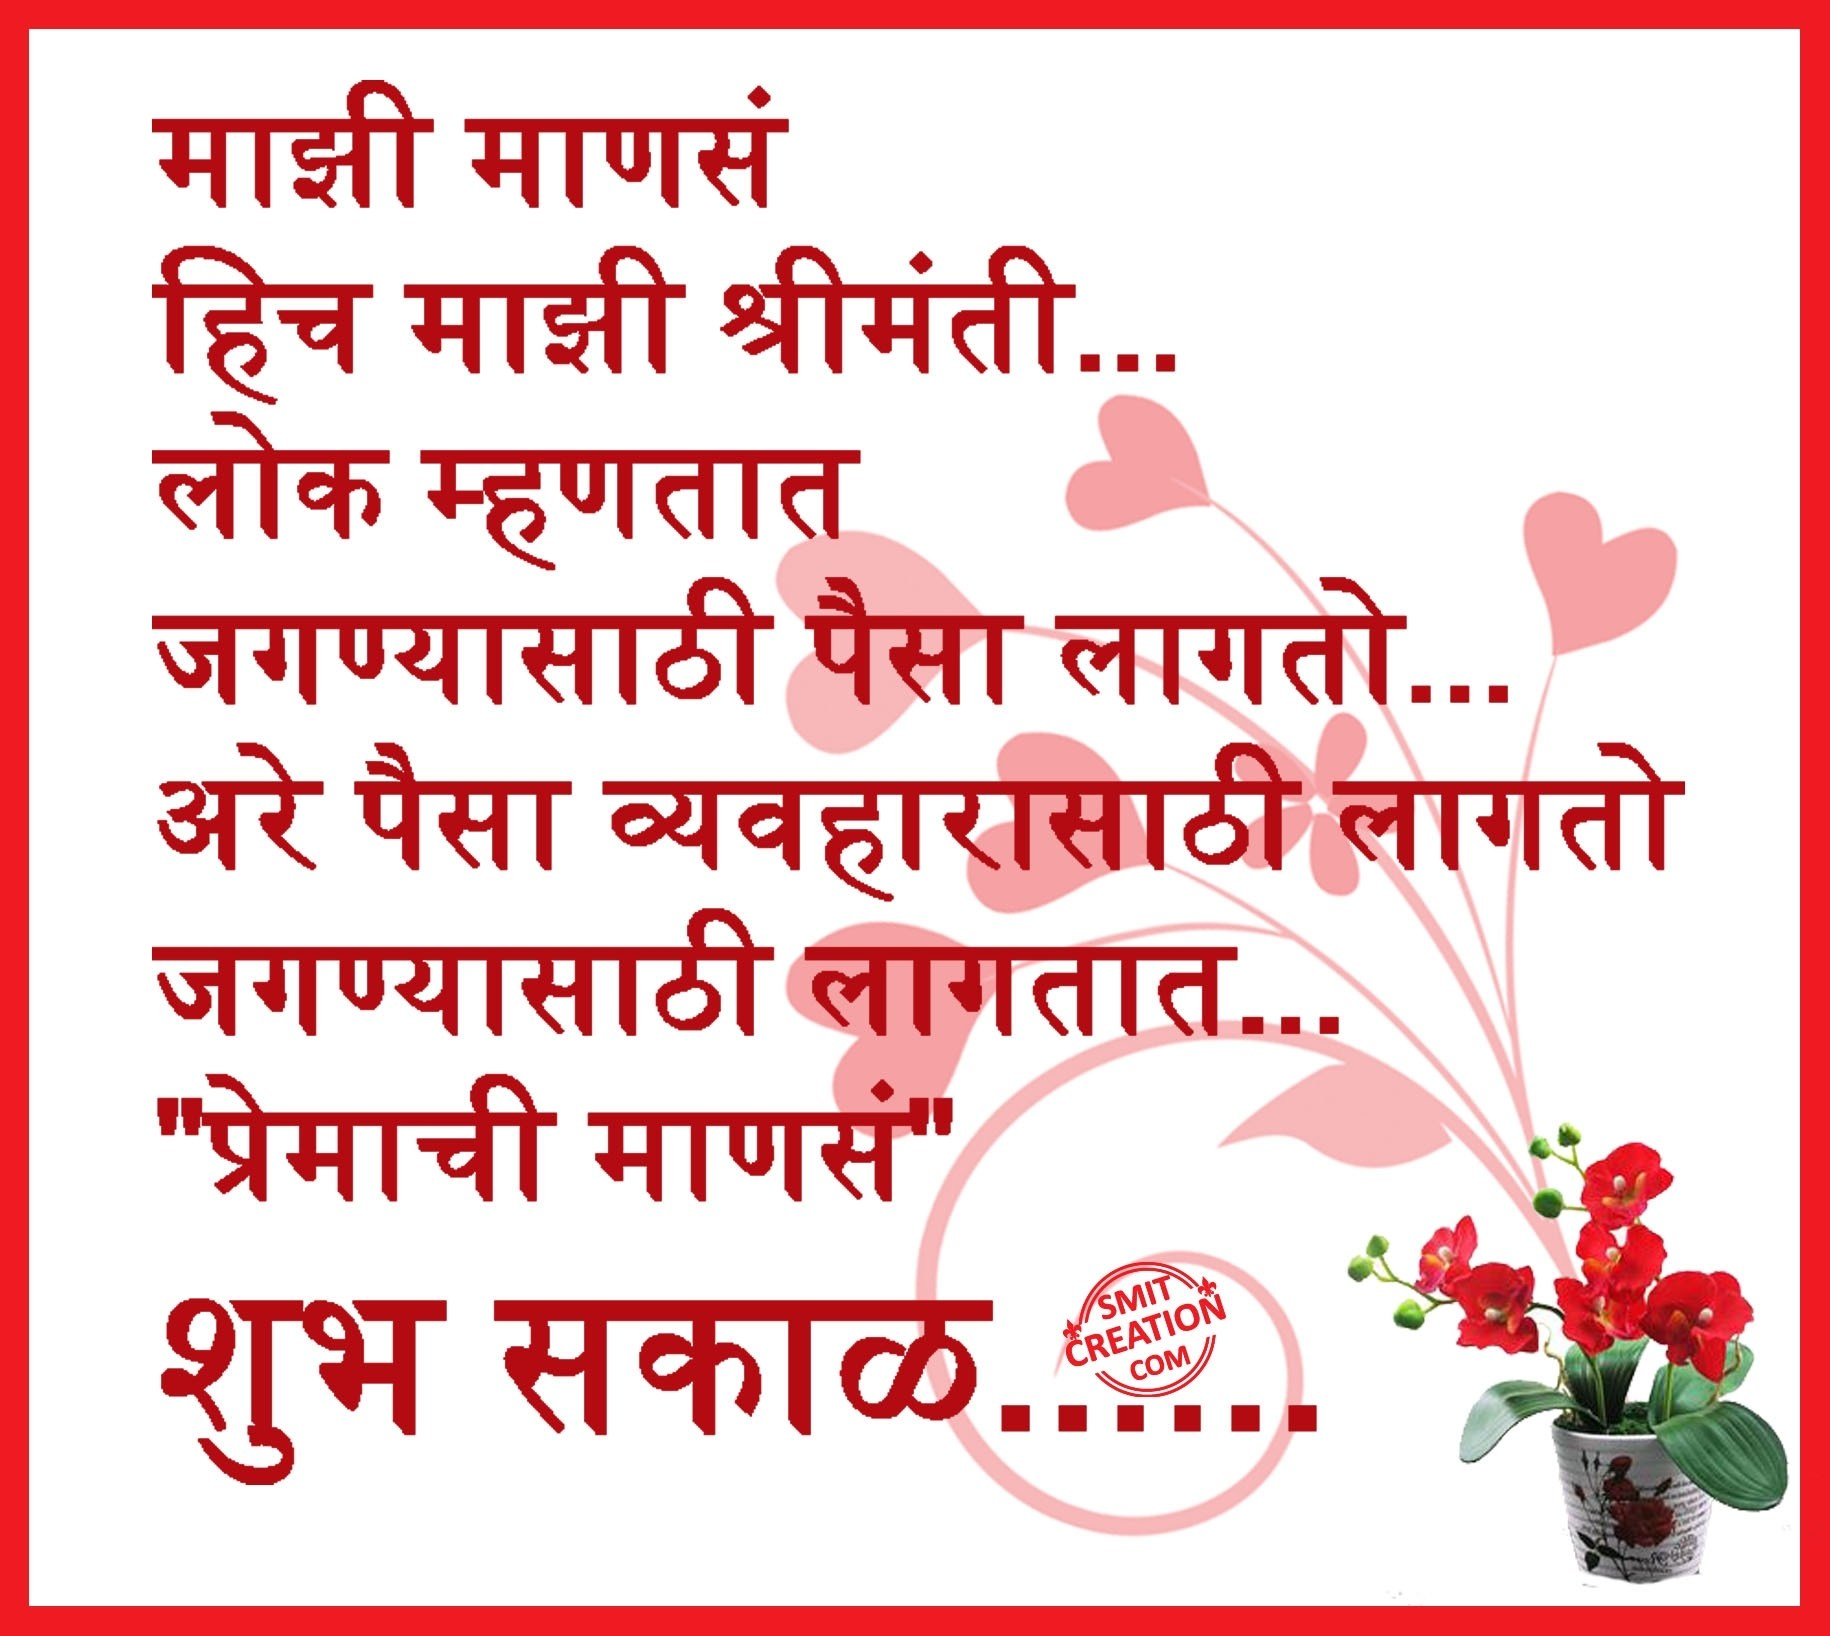 """Search Results for """"Marathi Good Morning Image"""" – Calendar 2015 Romantic Good Night Quotes For Her"""